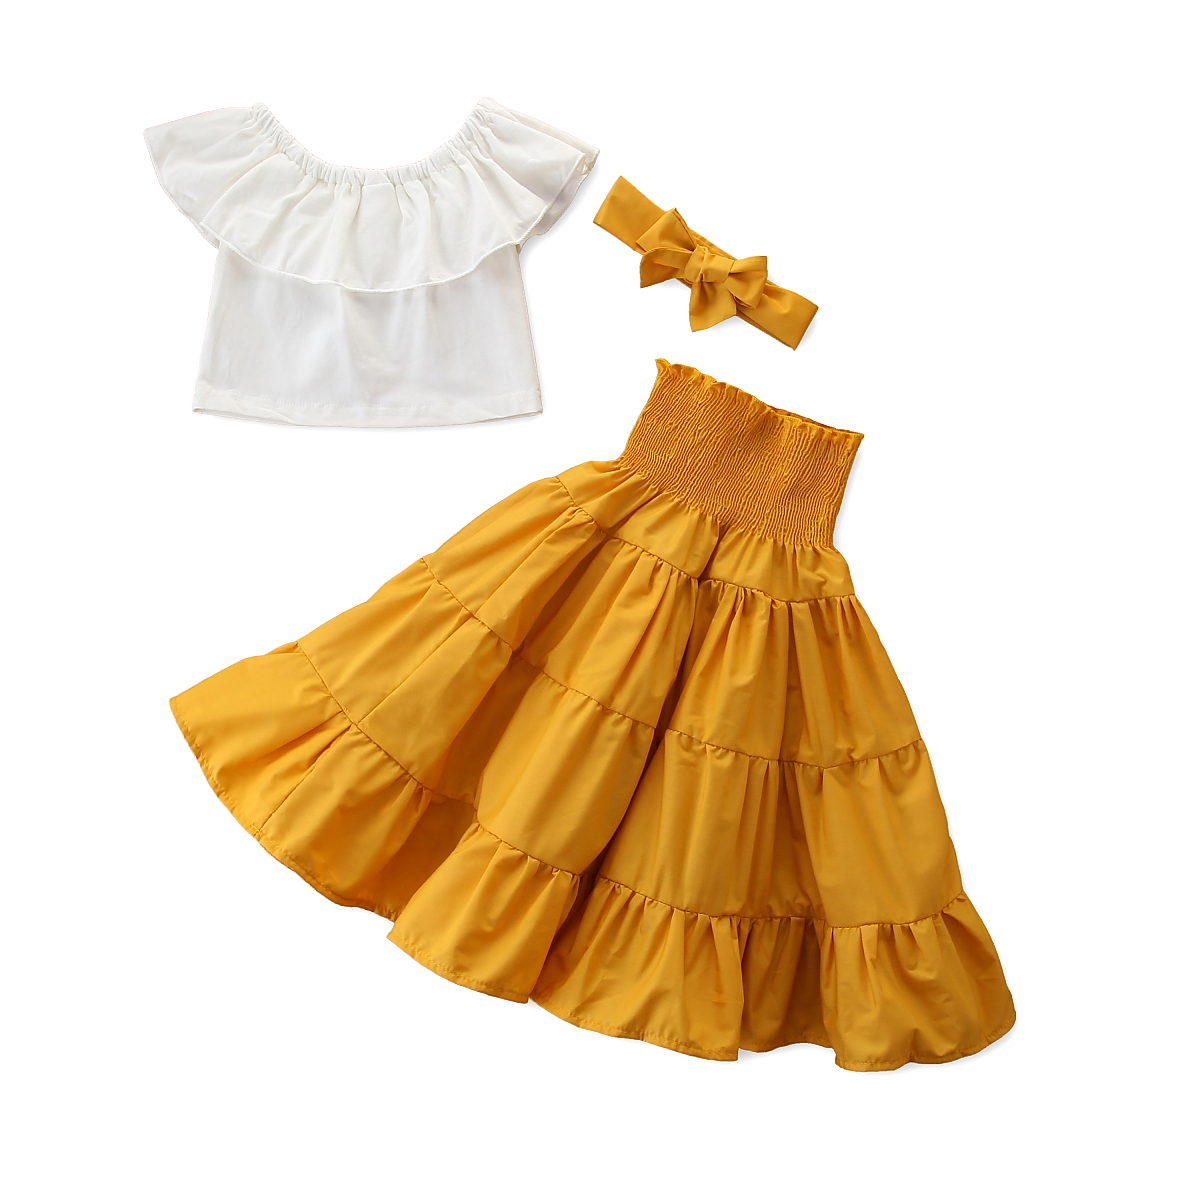 Pudcoco 2pcs Kid Baby Girl Clothes Sets 2-7Y Off Shoulder Crop Top Ruffle Tutu A-Line Skirts Headband Outfit Set Clothes